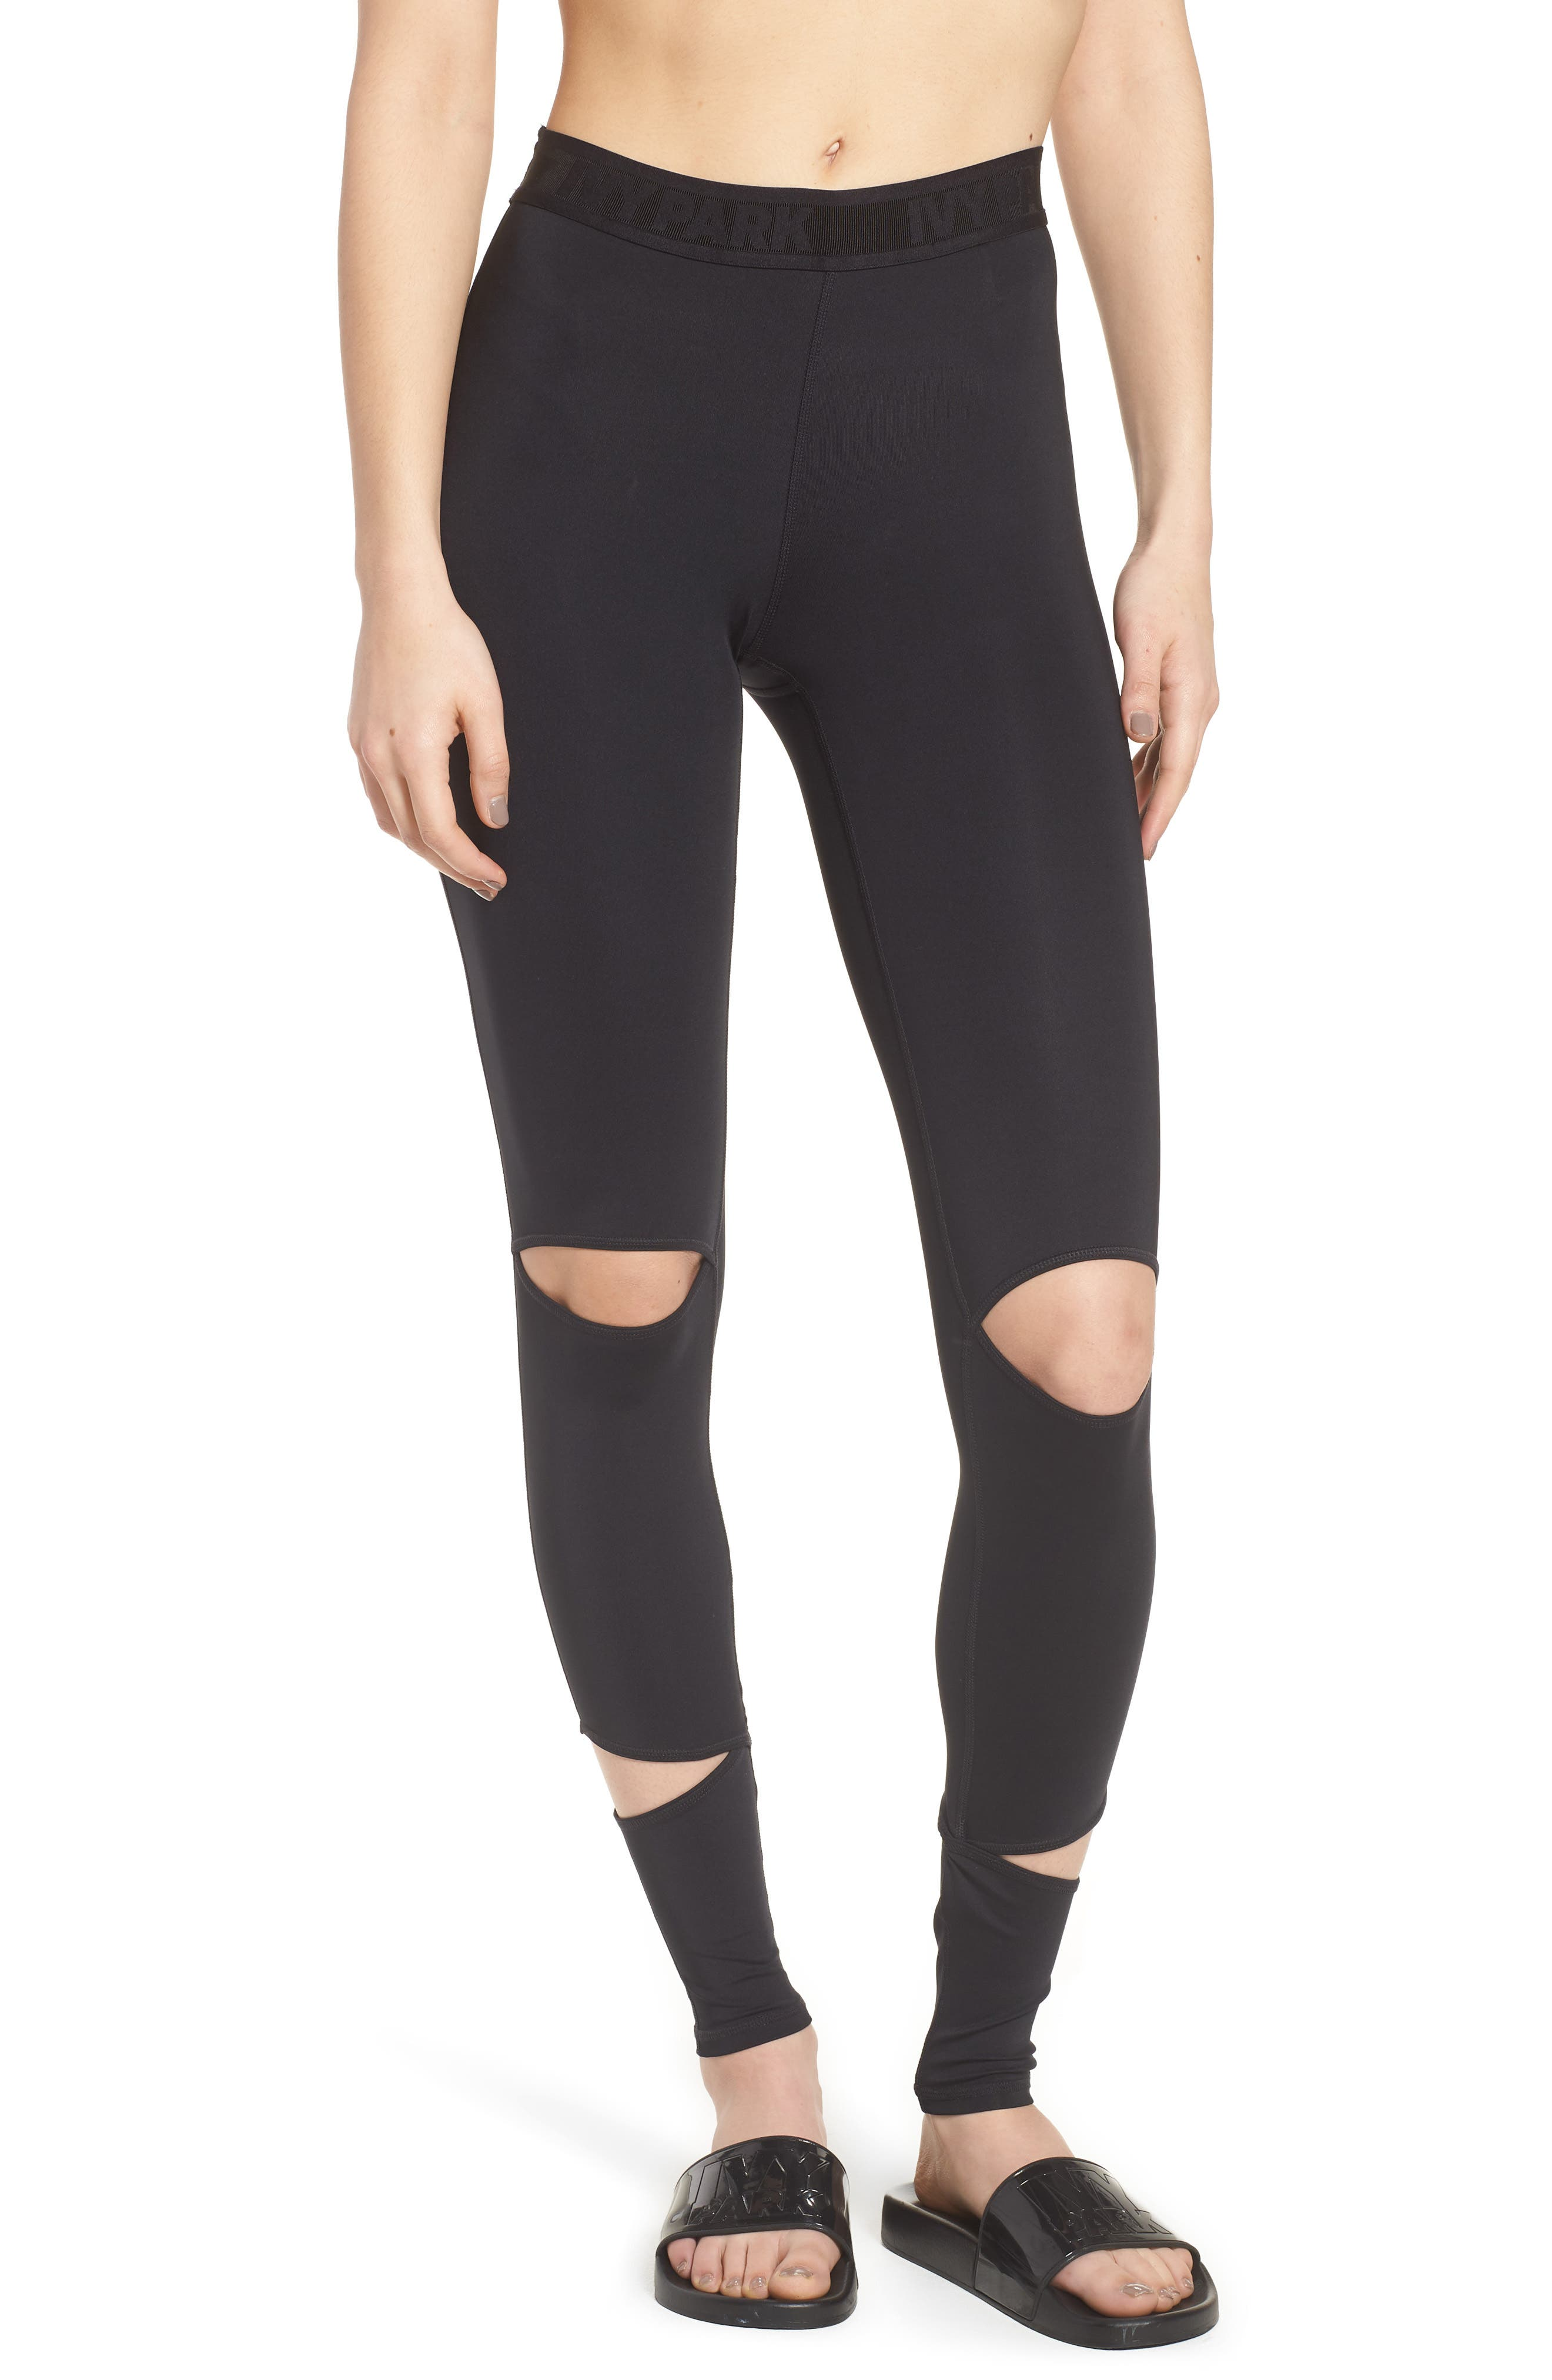 IVY PARK® Cutaway Full Length Leggings